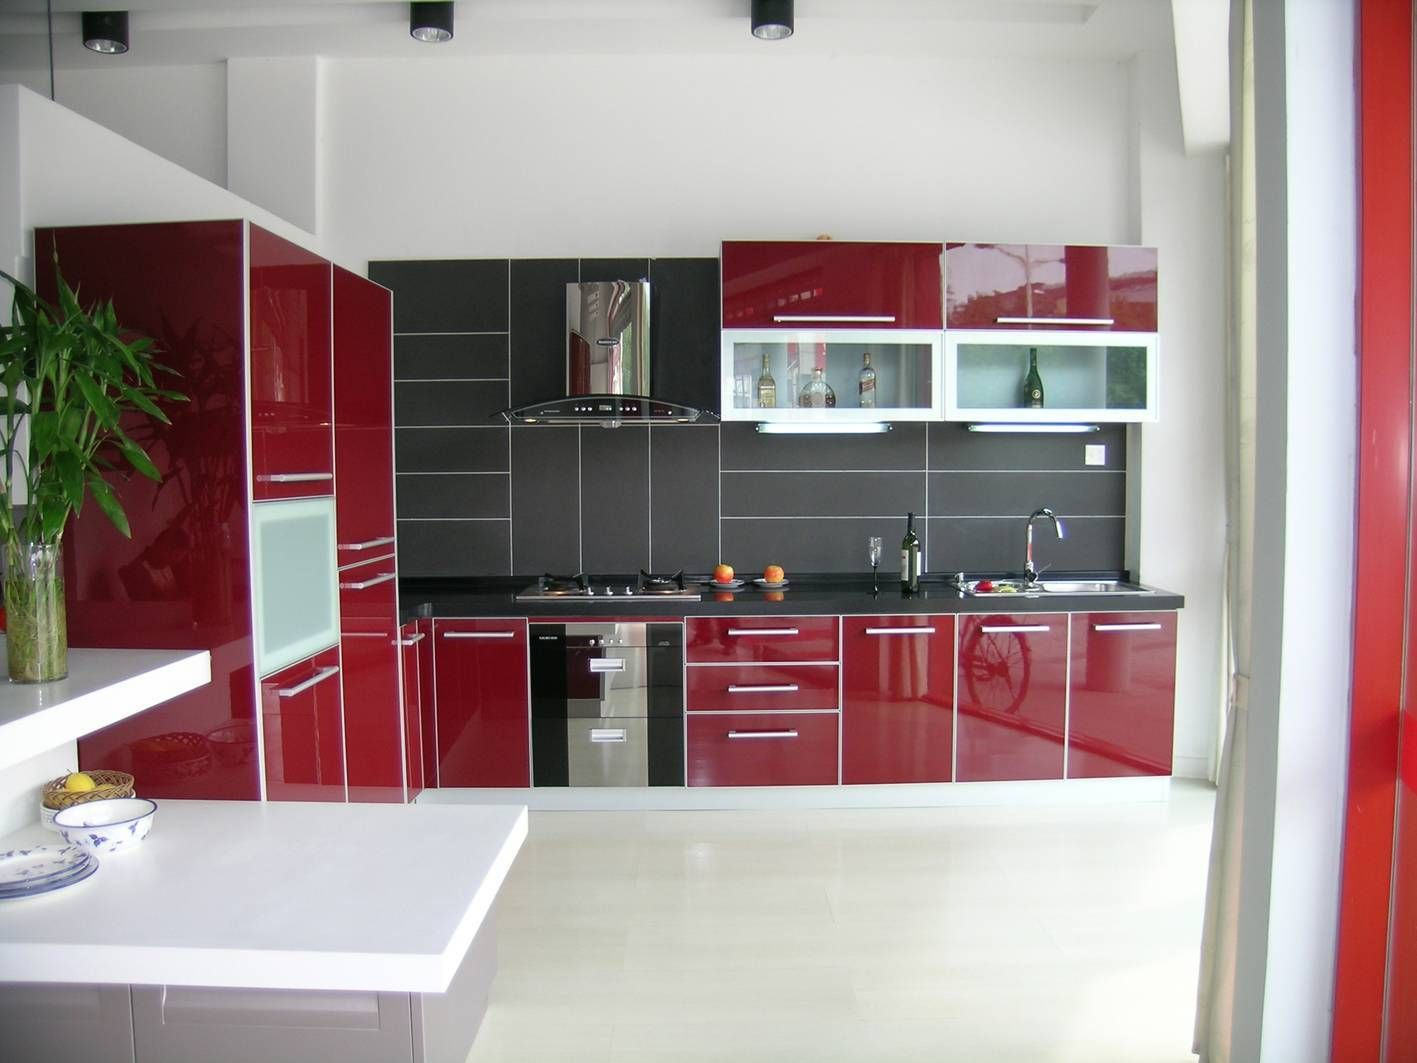 Home Design, Lavish Red Kitchen Cabinet Feats With L